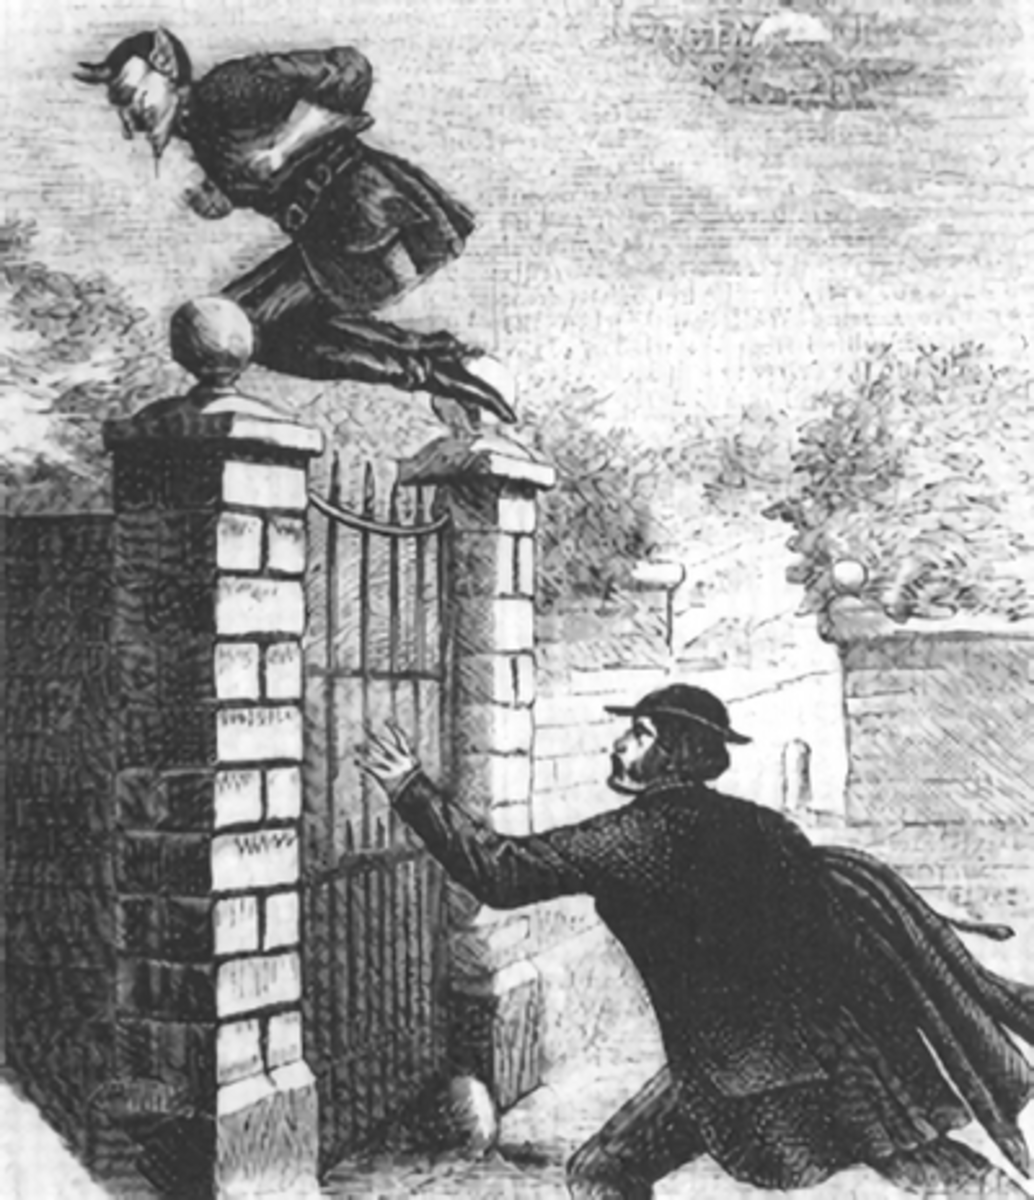 Illustration of Spring-Heeled Jack jumping a gate from a Victorian Penny Dreadful